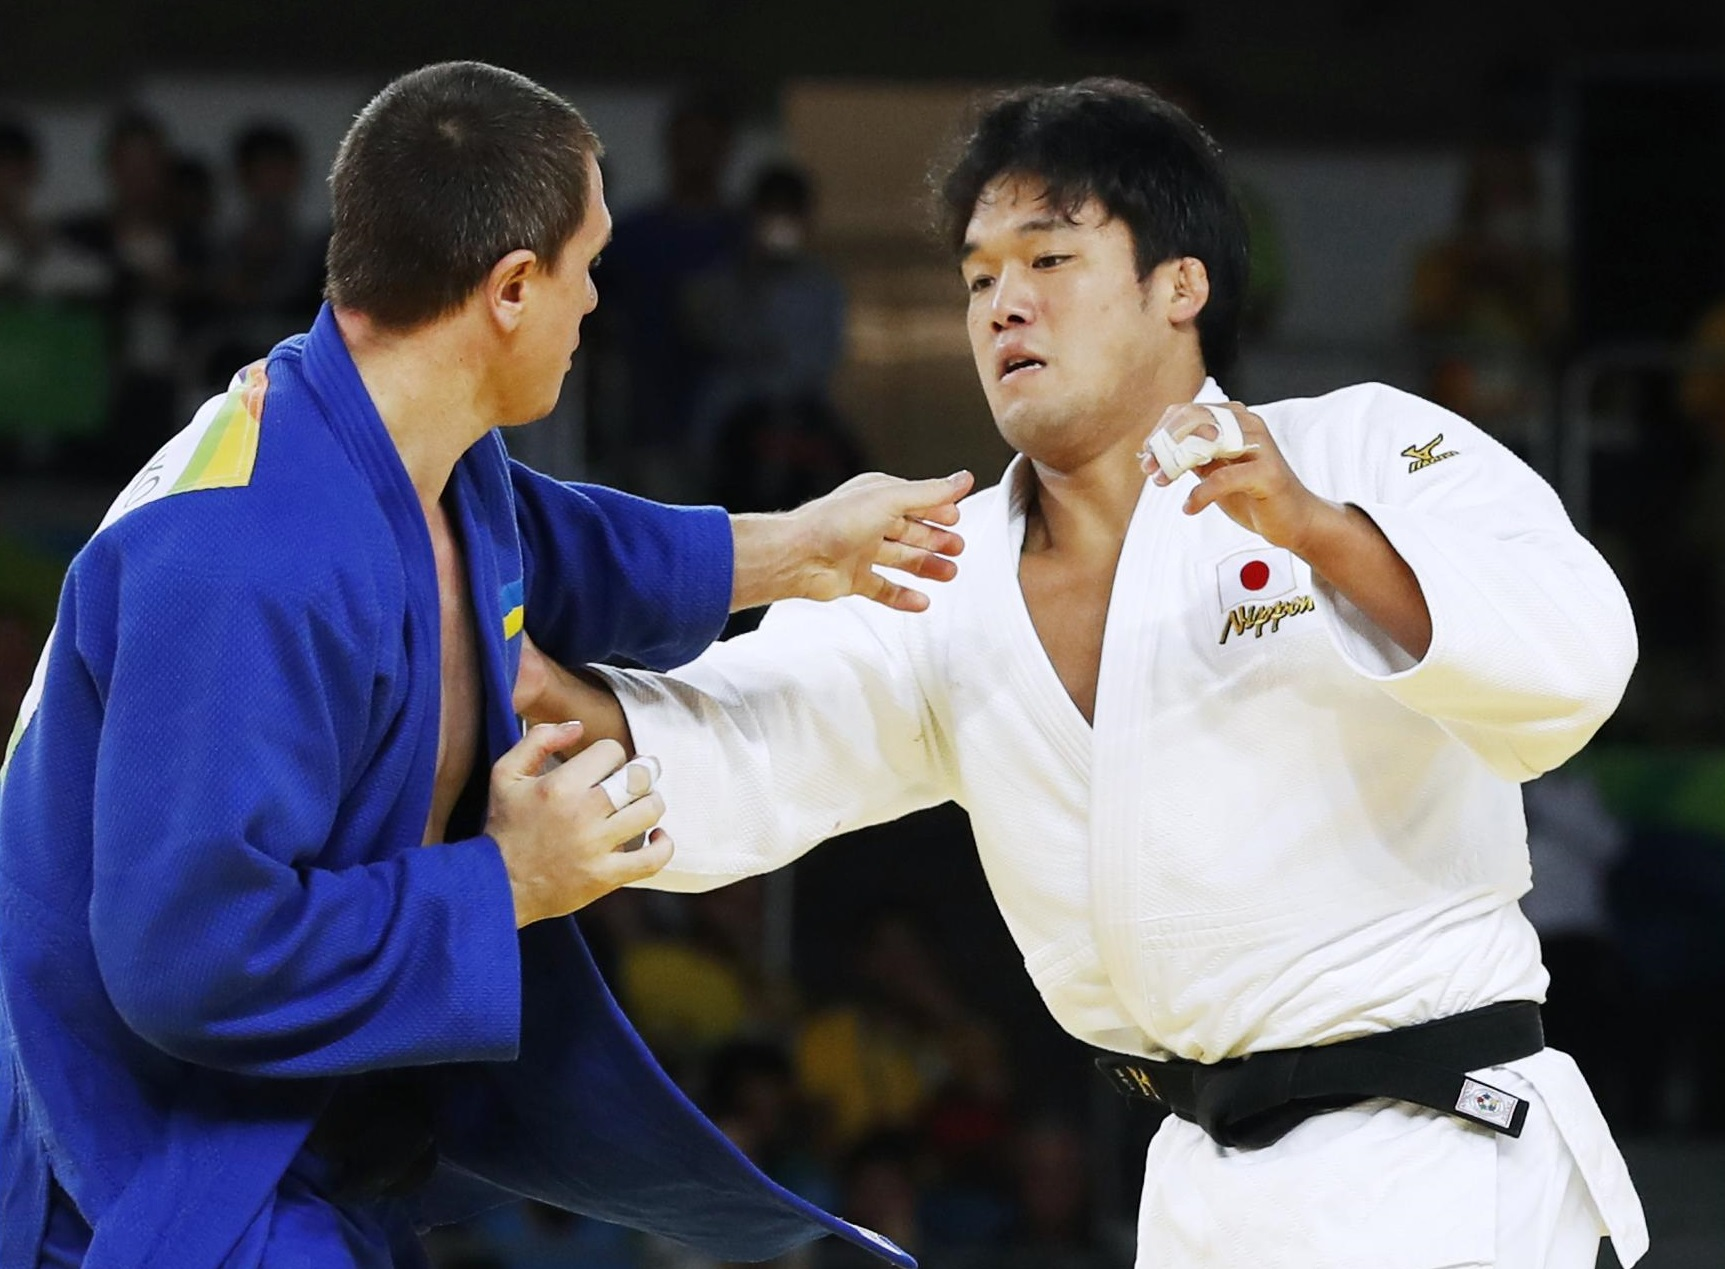 Japan's Ryunosuke Haga competes against Ukraine's Artem Bloshenko in the bronze-medal match of the men's 100 kilograms on Thursday at the Rio de Janeiro Olympics. Haga won the bout. | KYODO